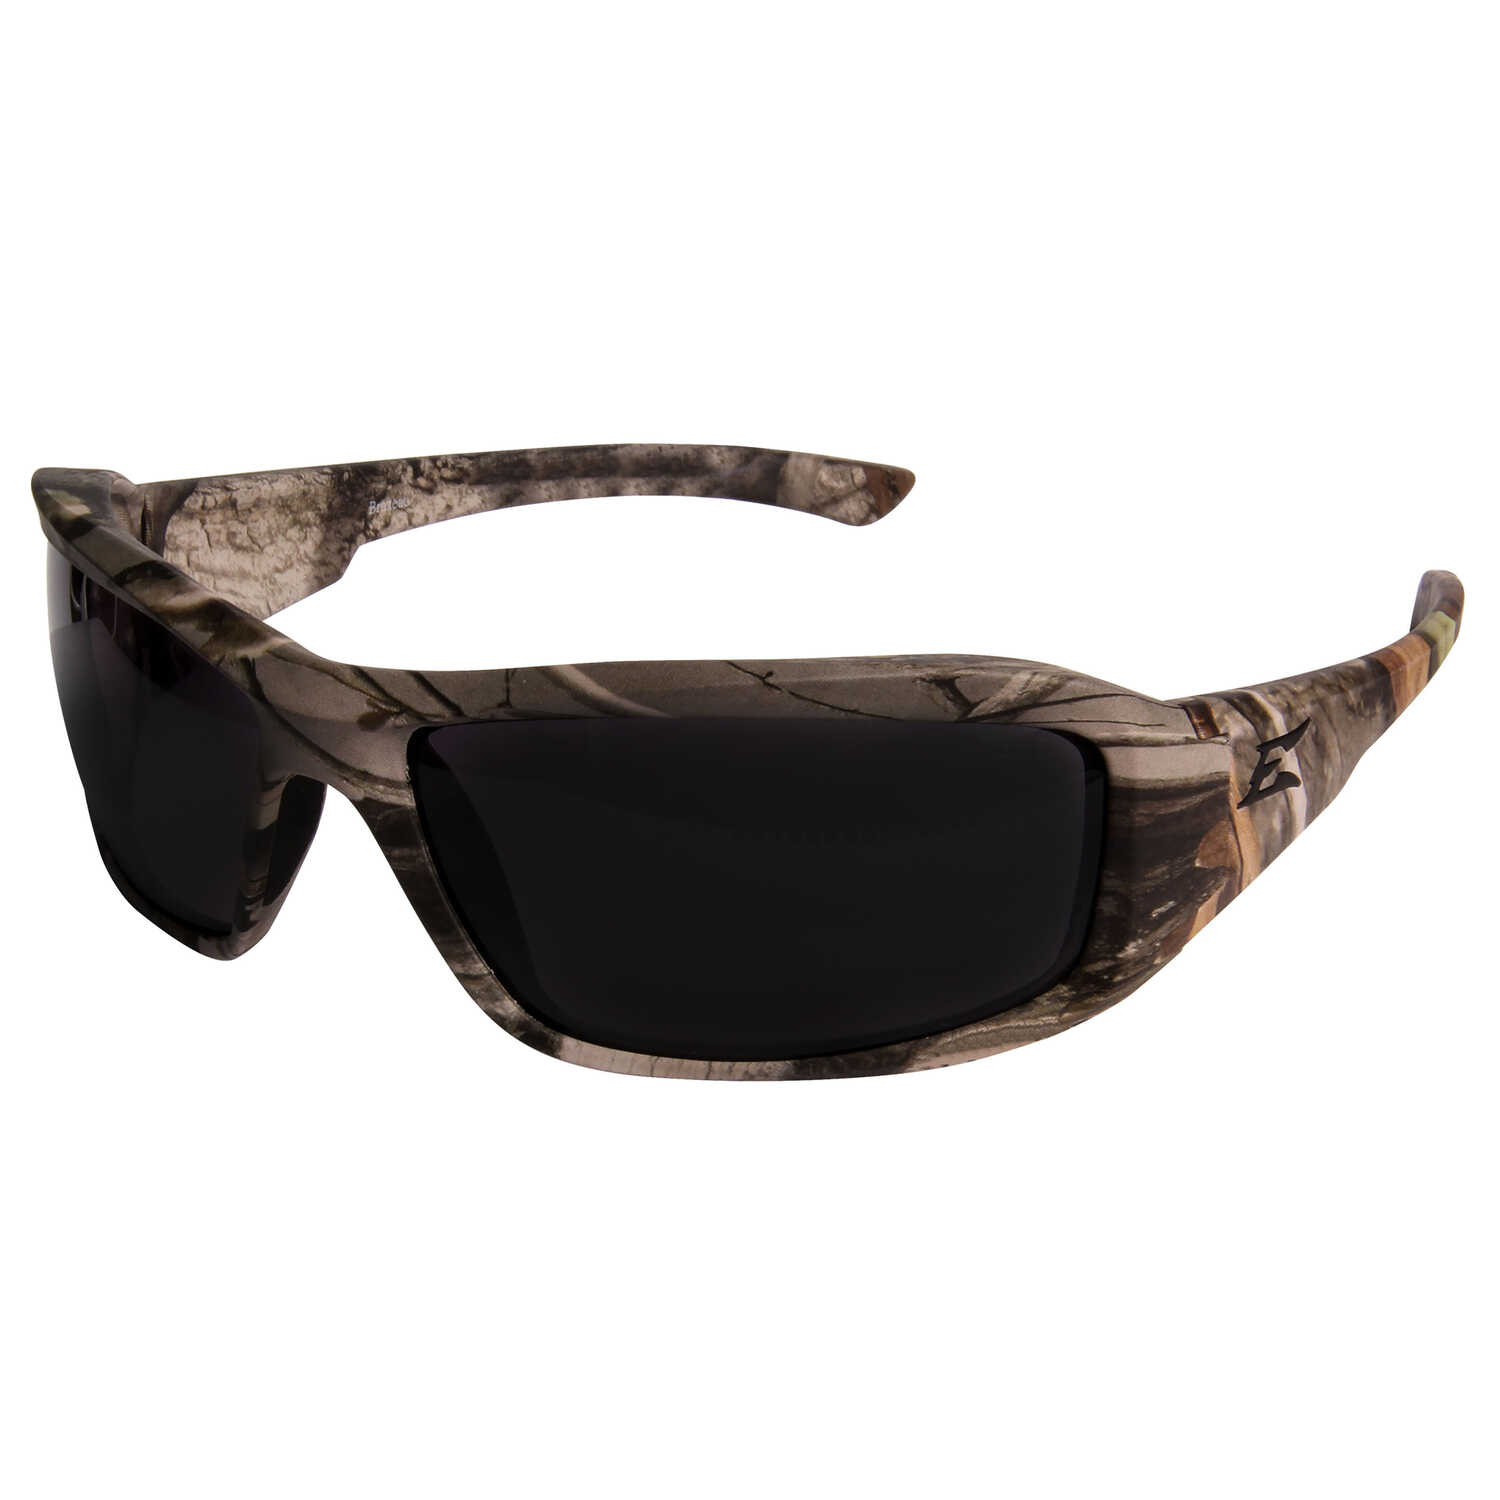 Edge Eyewear  Brazeau  Safety Glasses  Camouflage  1  Smoke